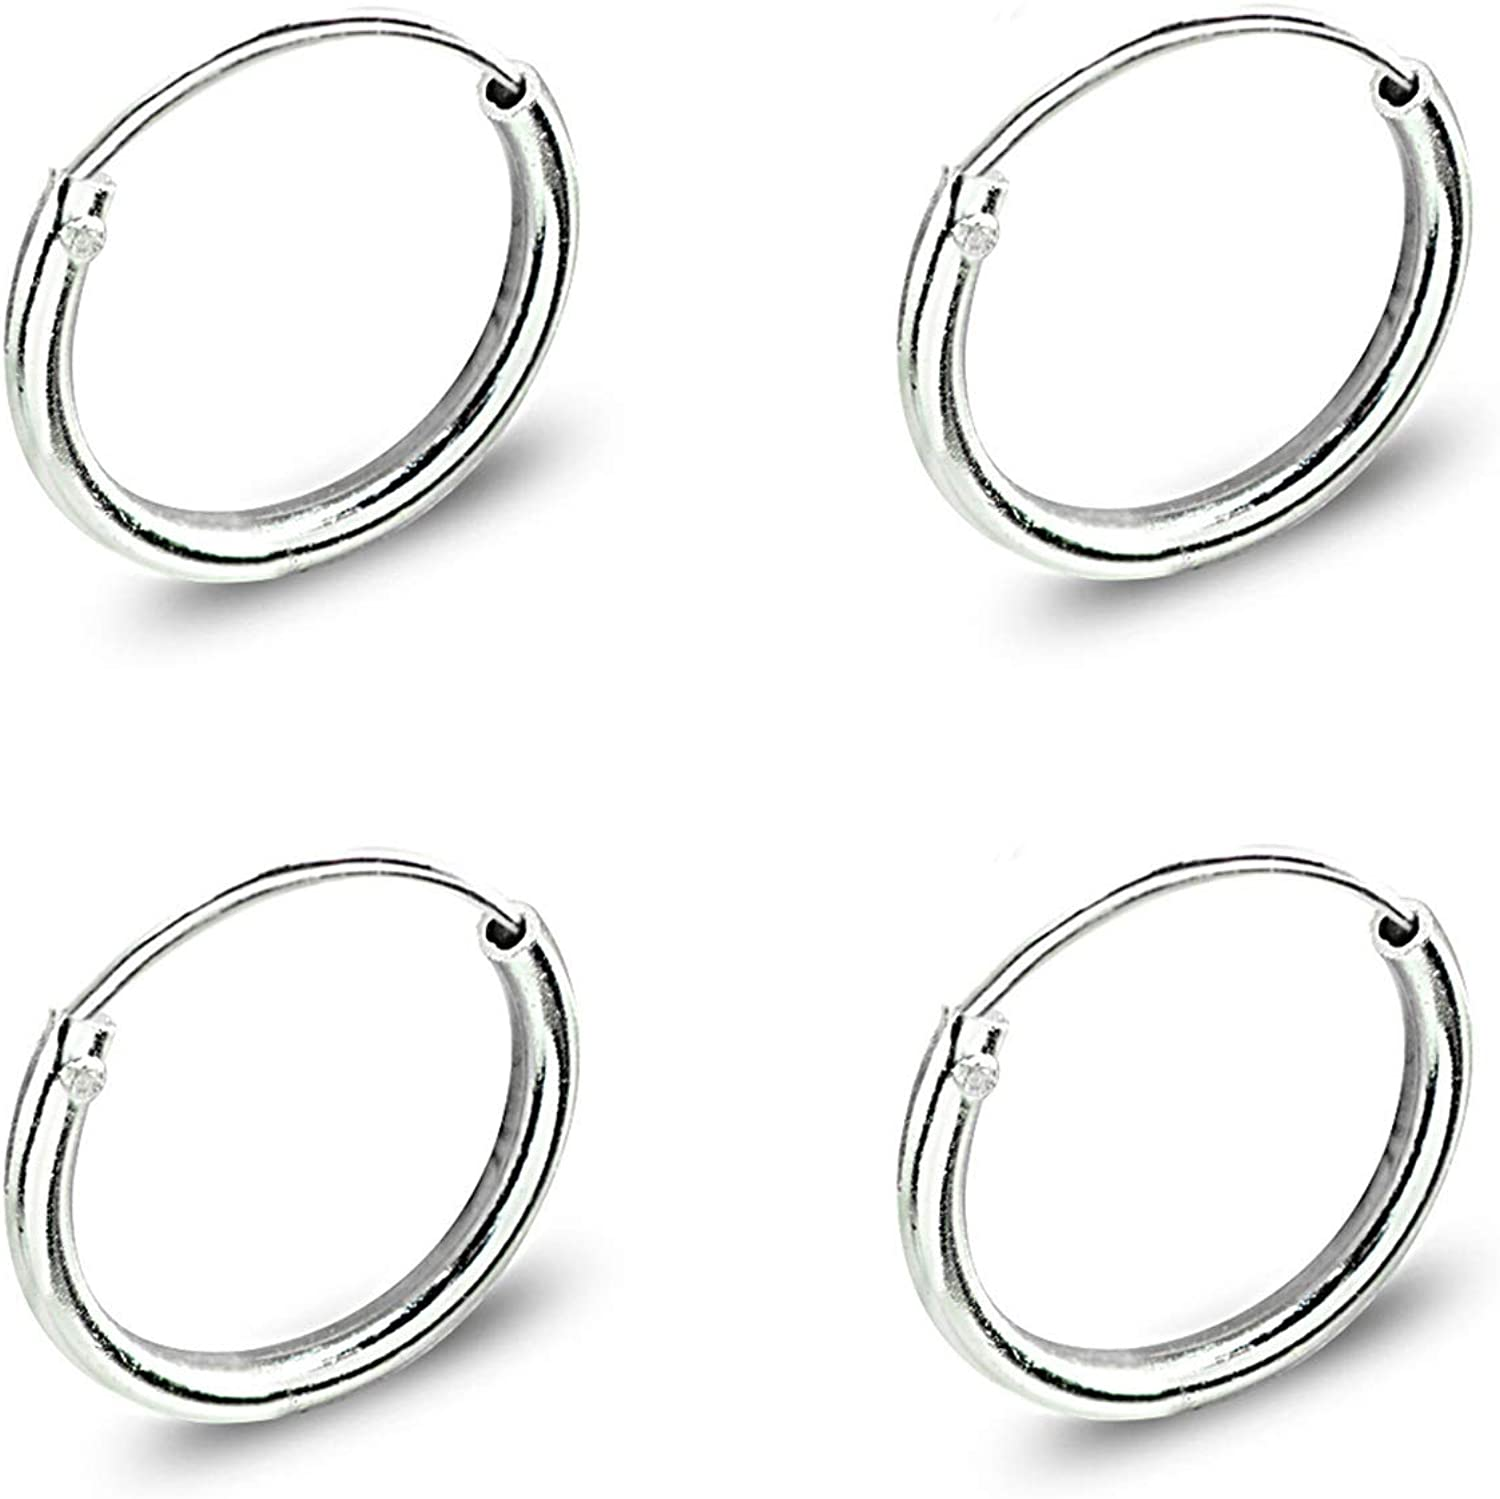 Set of 2 Sterling Silver Small Endless 10mm Thin Round Cartilage Hoop Earrings for Men Women